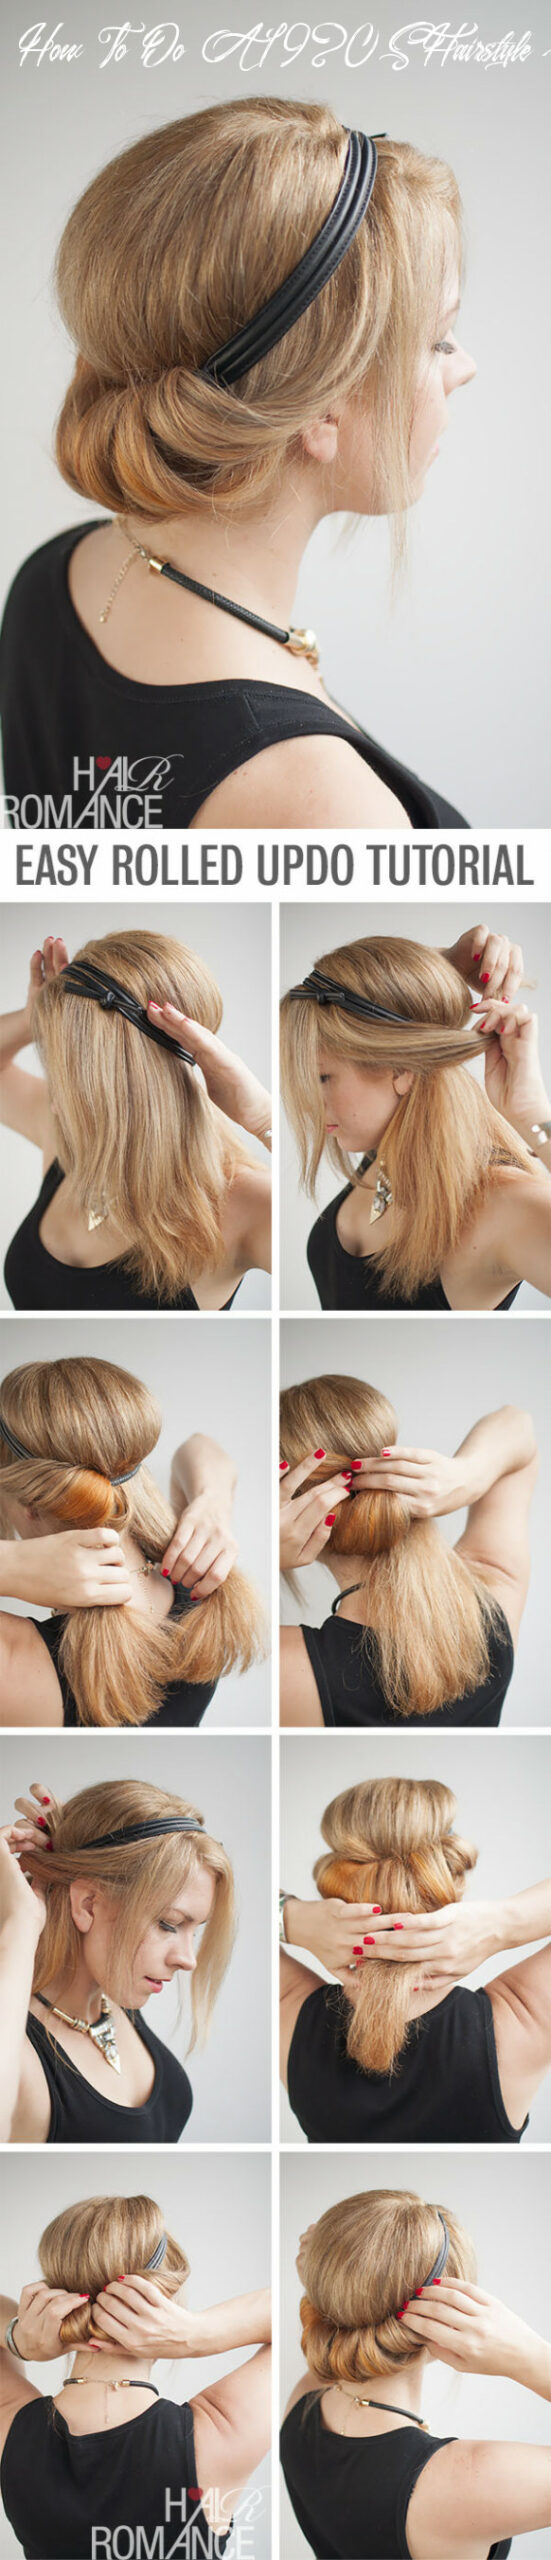 How to do a chic rolled updo - Hair Romance